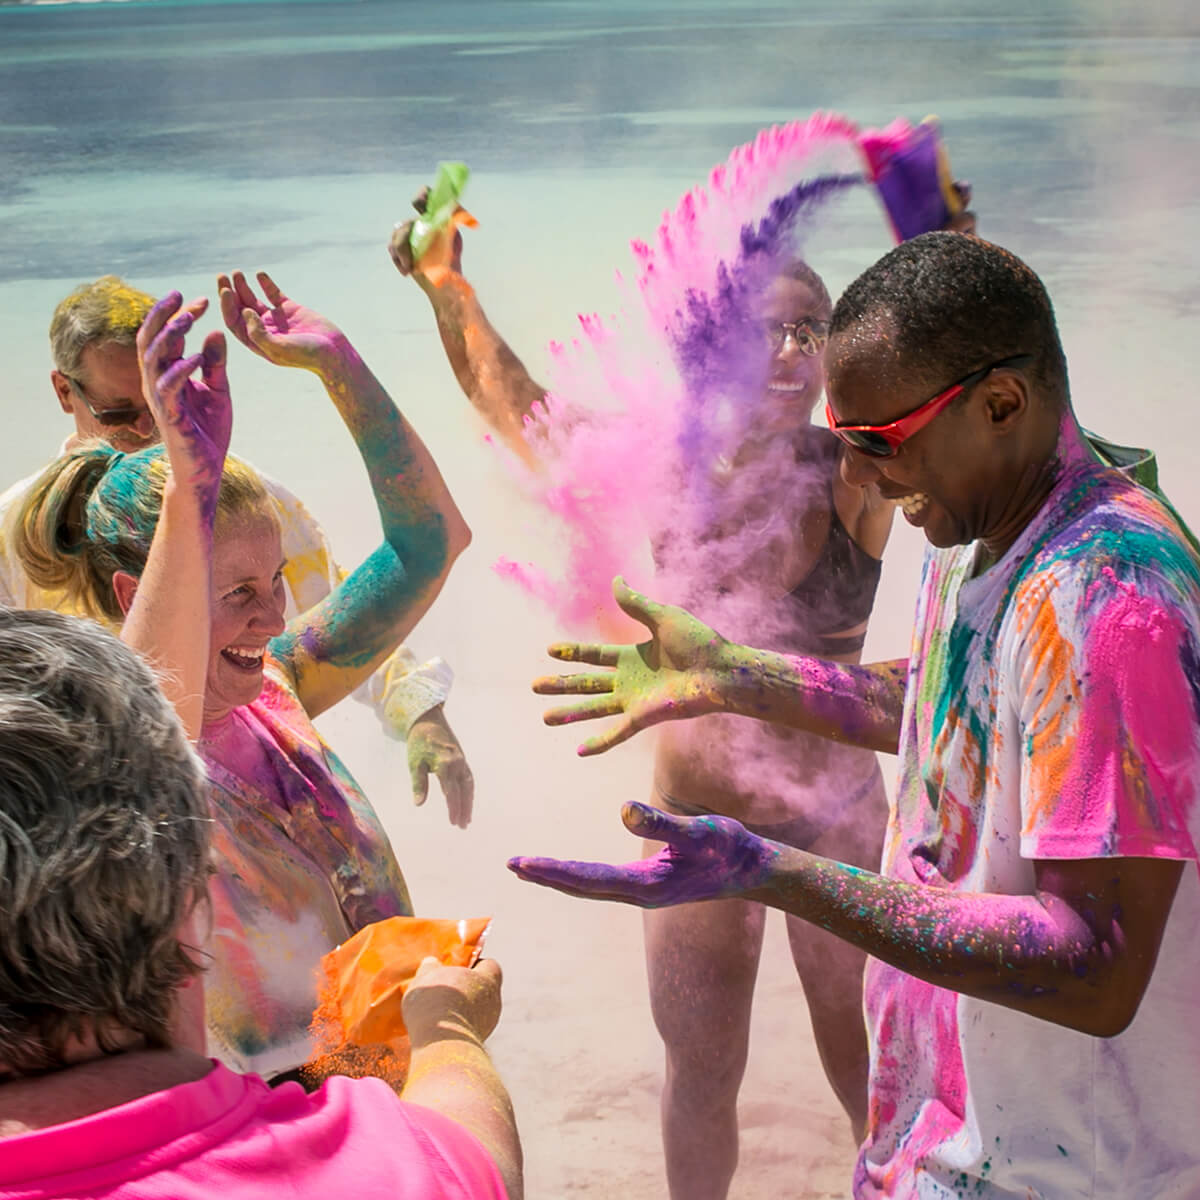 Troy and Mary's friends surprise them with a paint powder celebration during their wedding rehearsal.